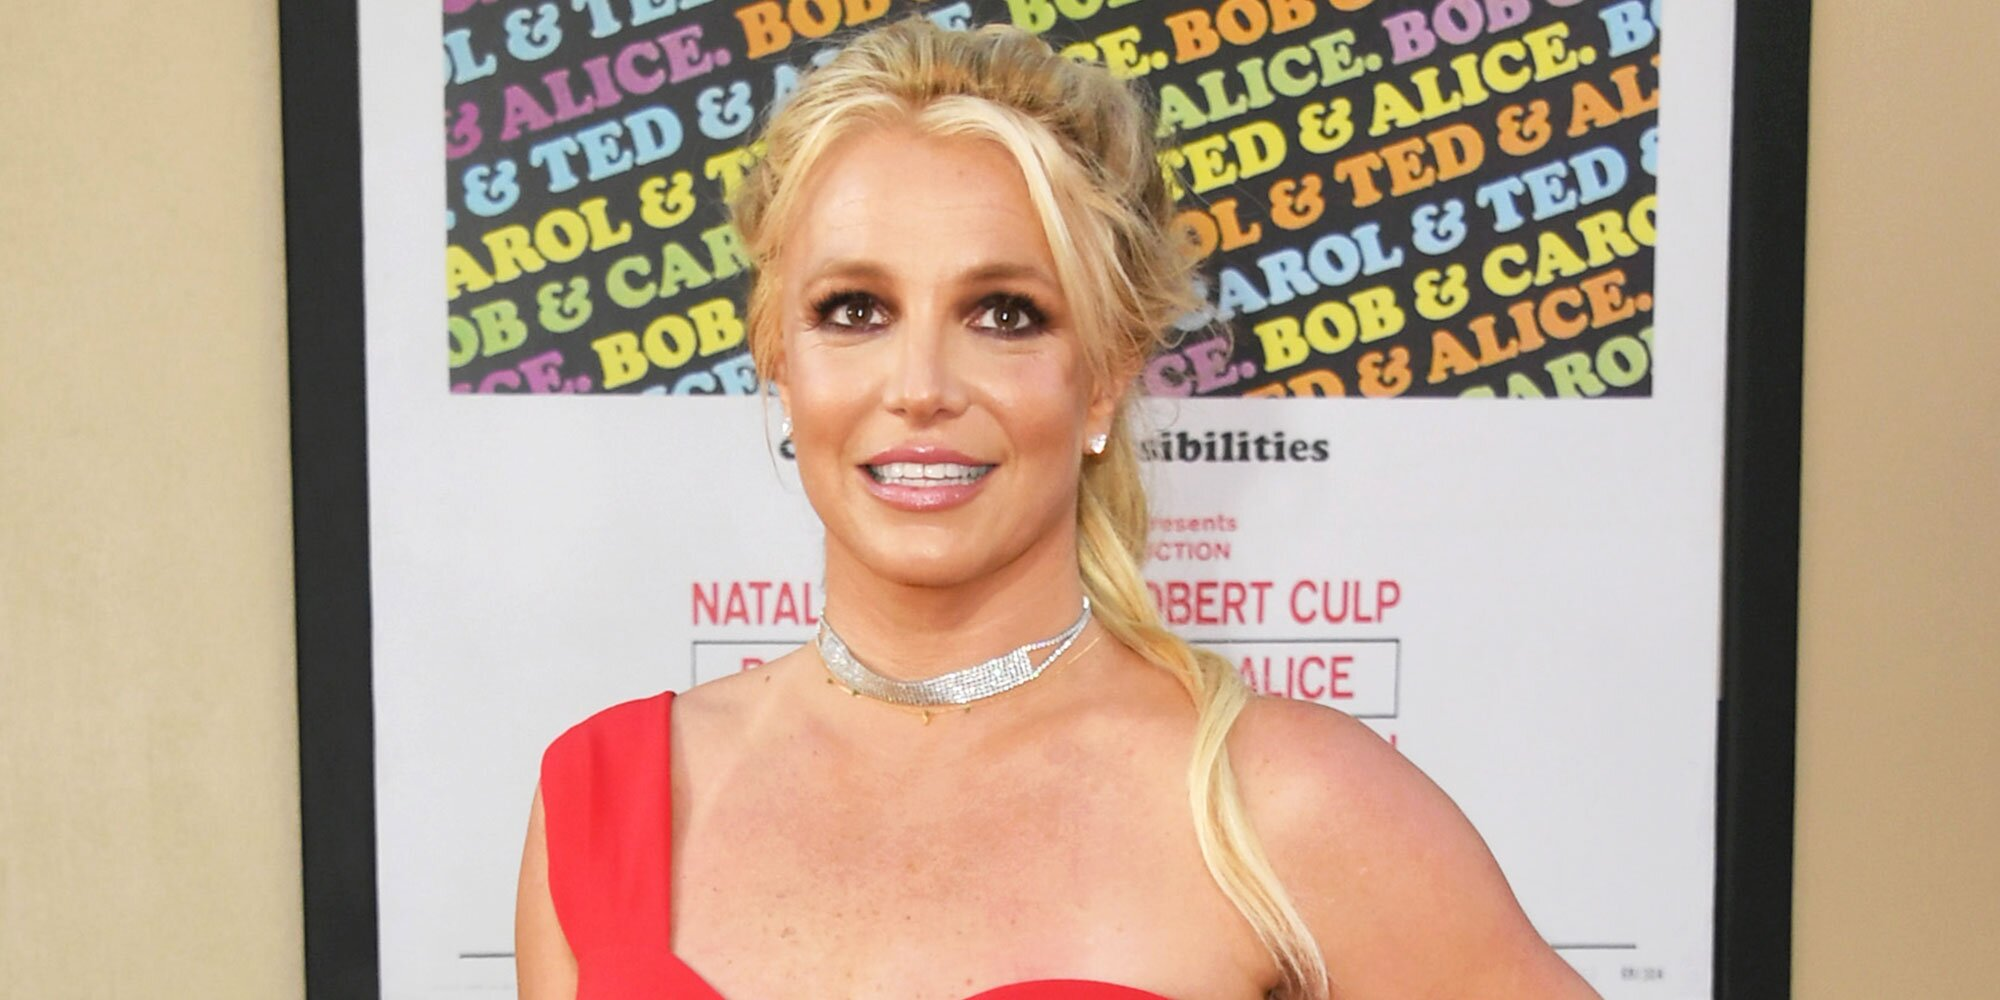 Britney Spears speaks out for first time since documentary release